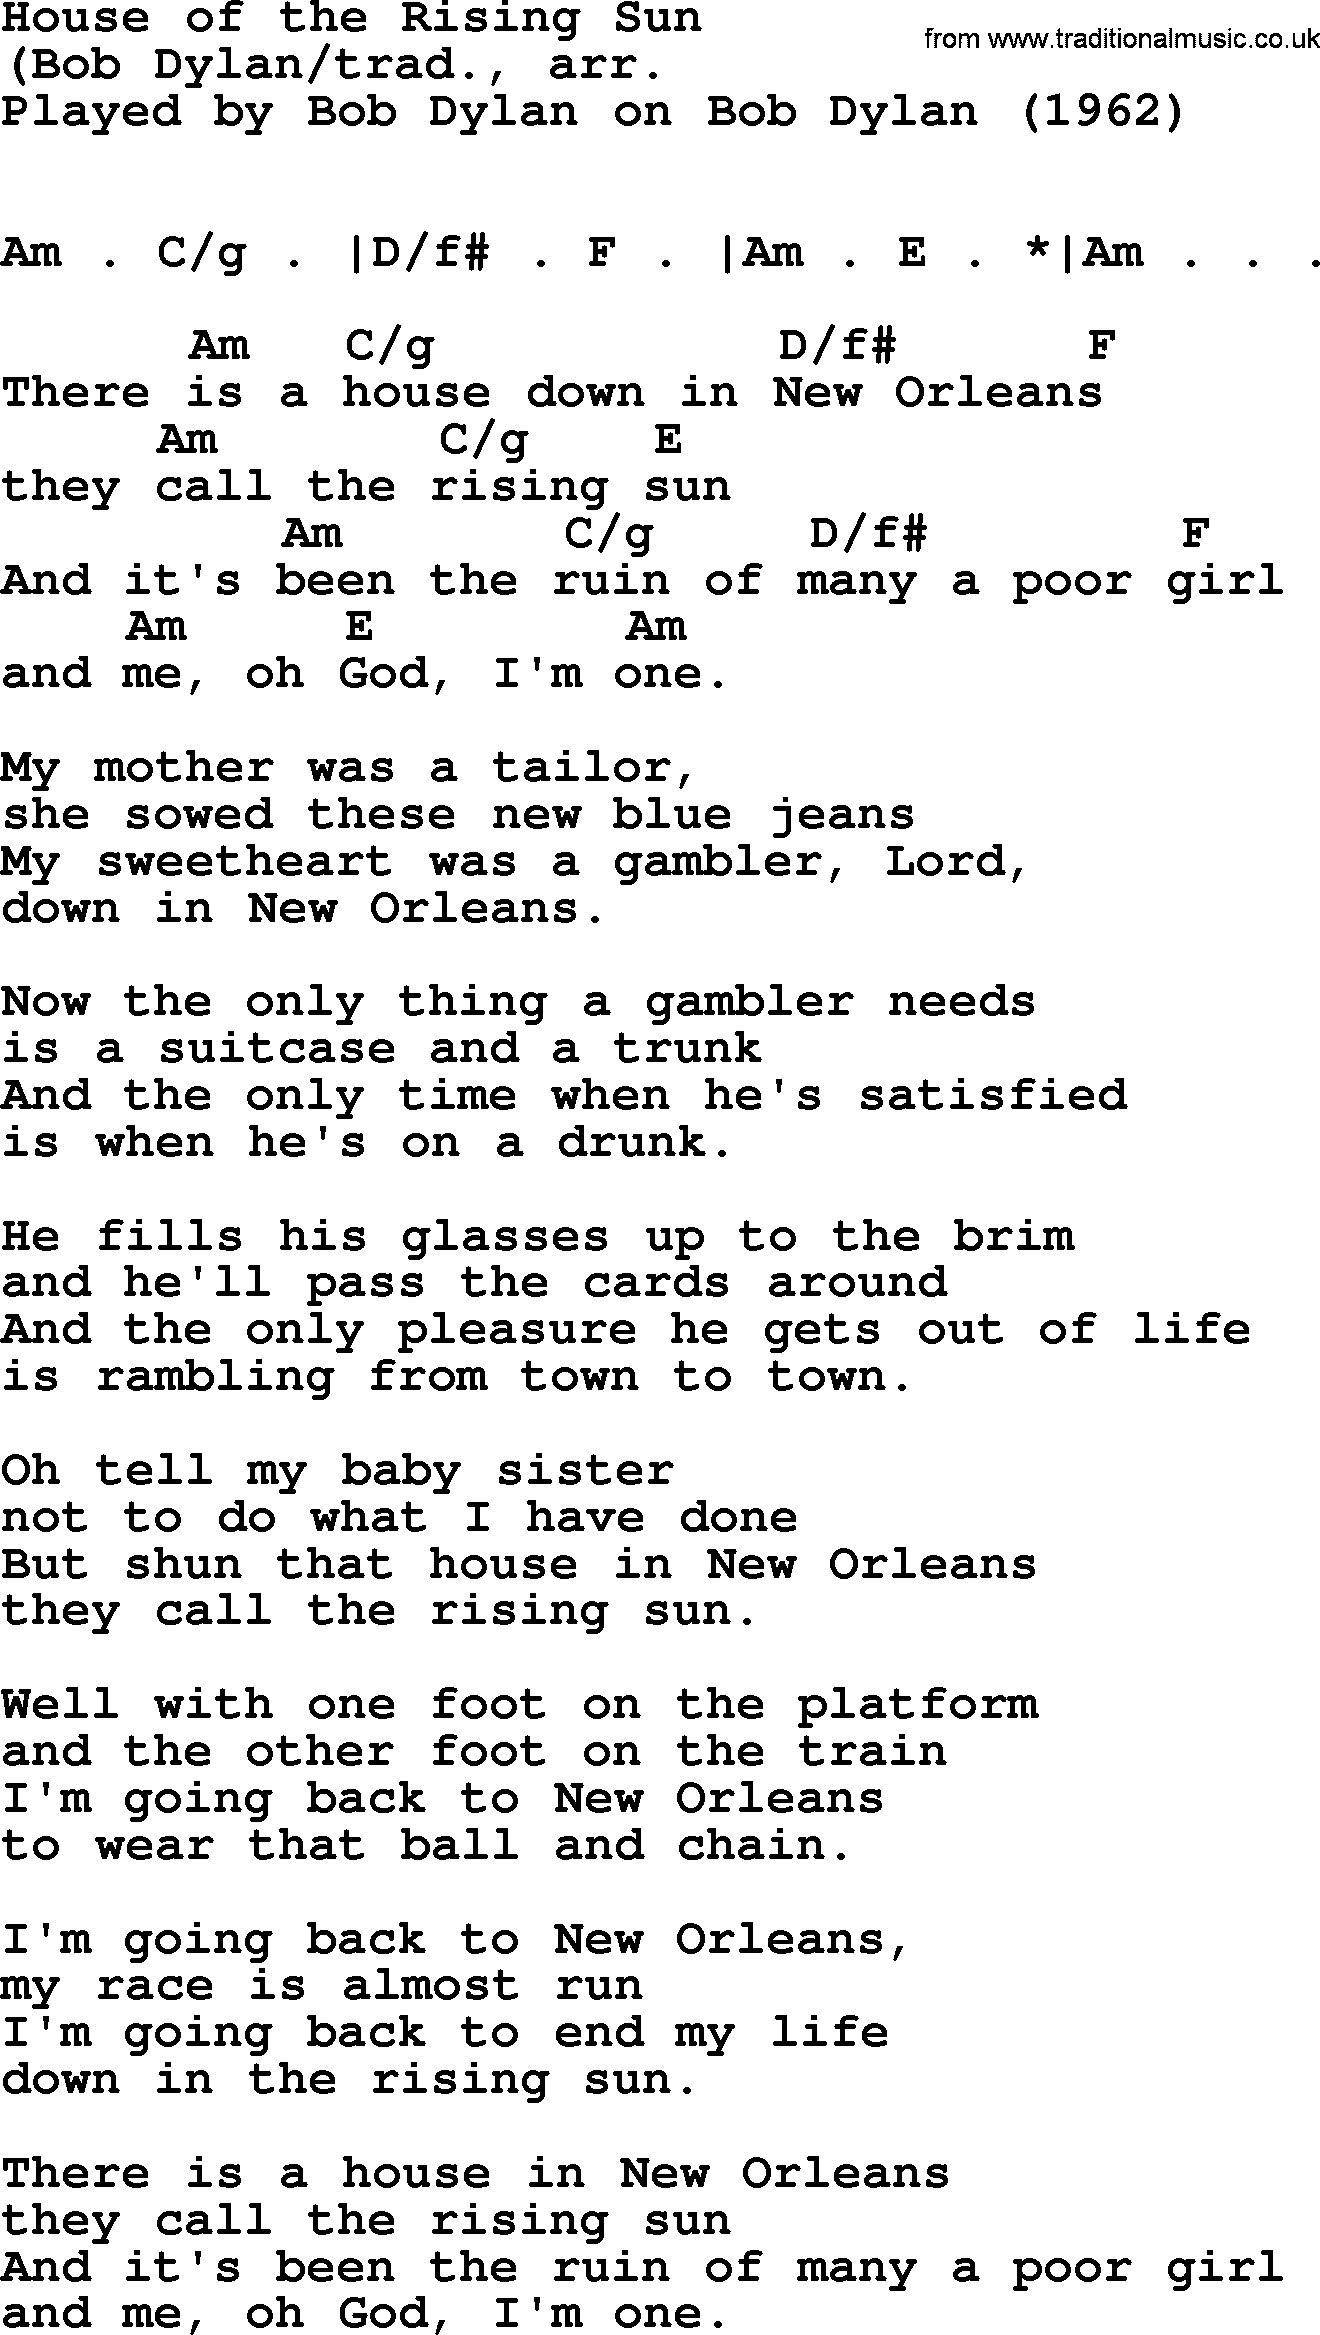 House Of The Rising Sun Chords Bob Dylan Song House Of The Rising Sun Lyrics And Chords